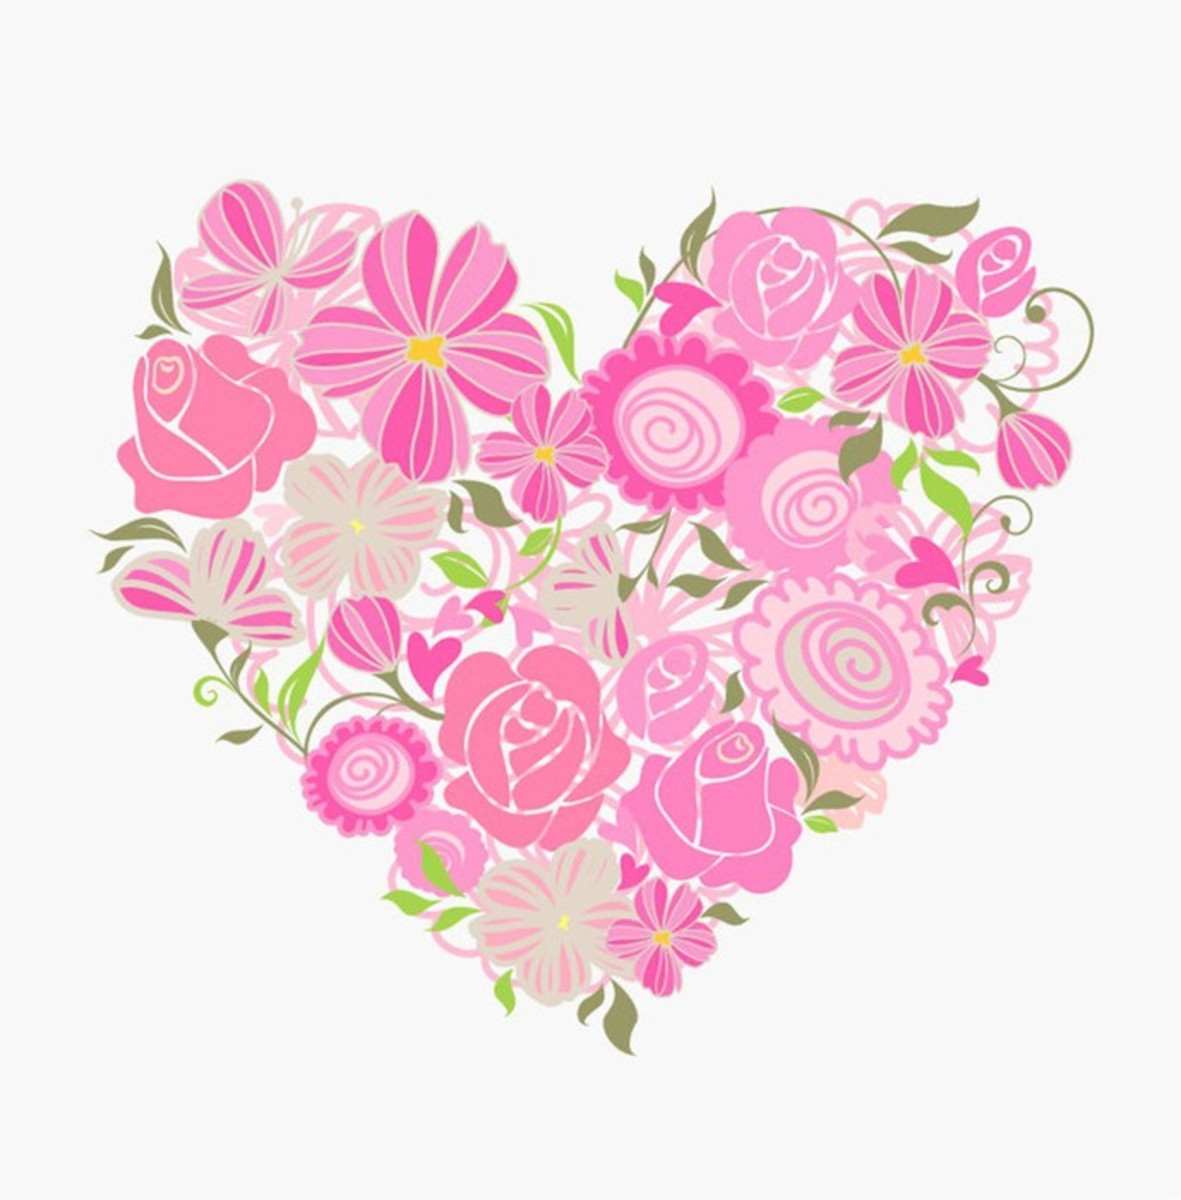 Heart Made with Pink Flowers